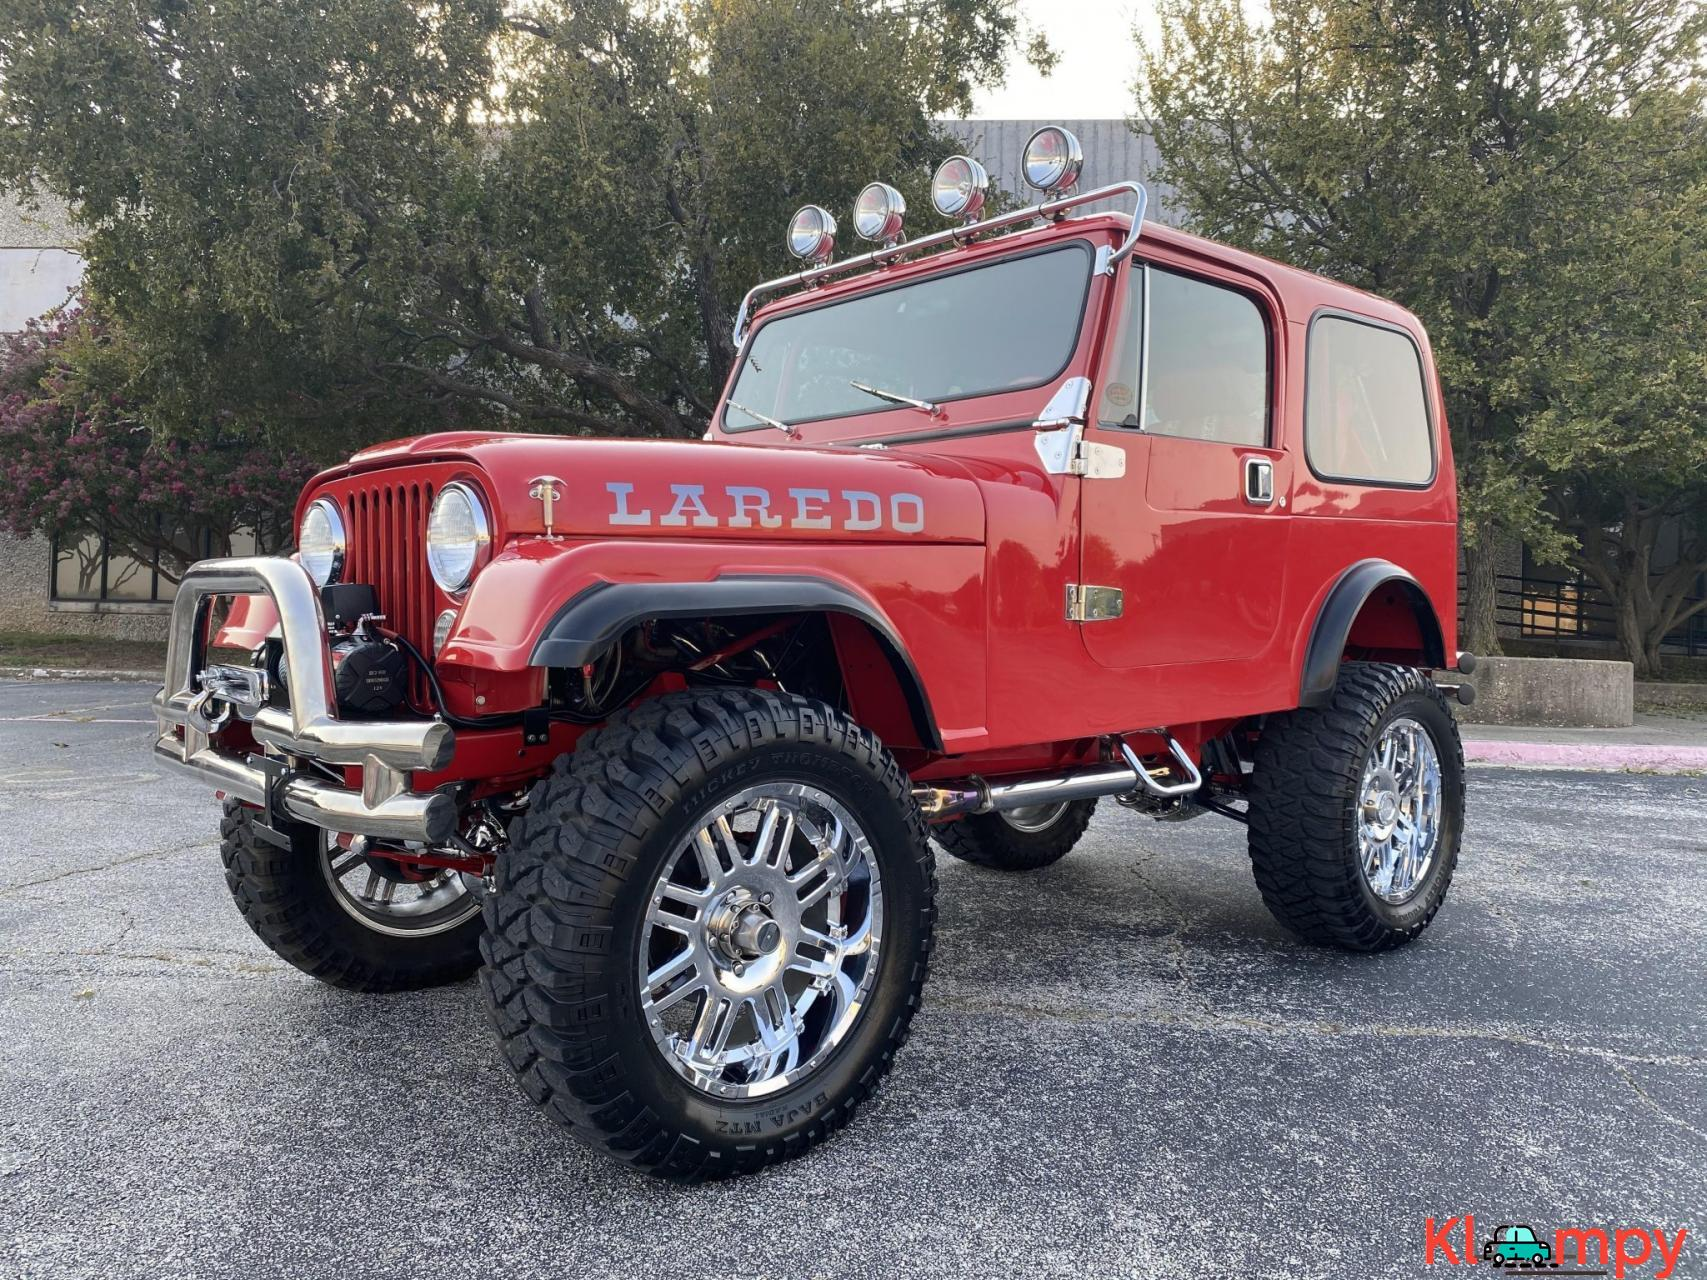 1983 Jeep CJ-7 Supercharged 350 V8 - 2/20